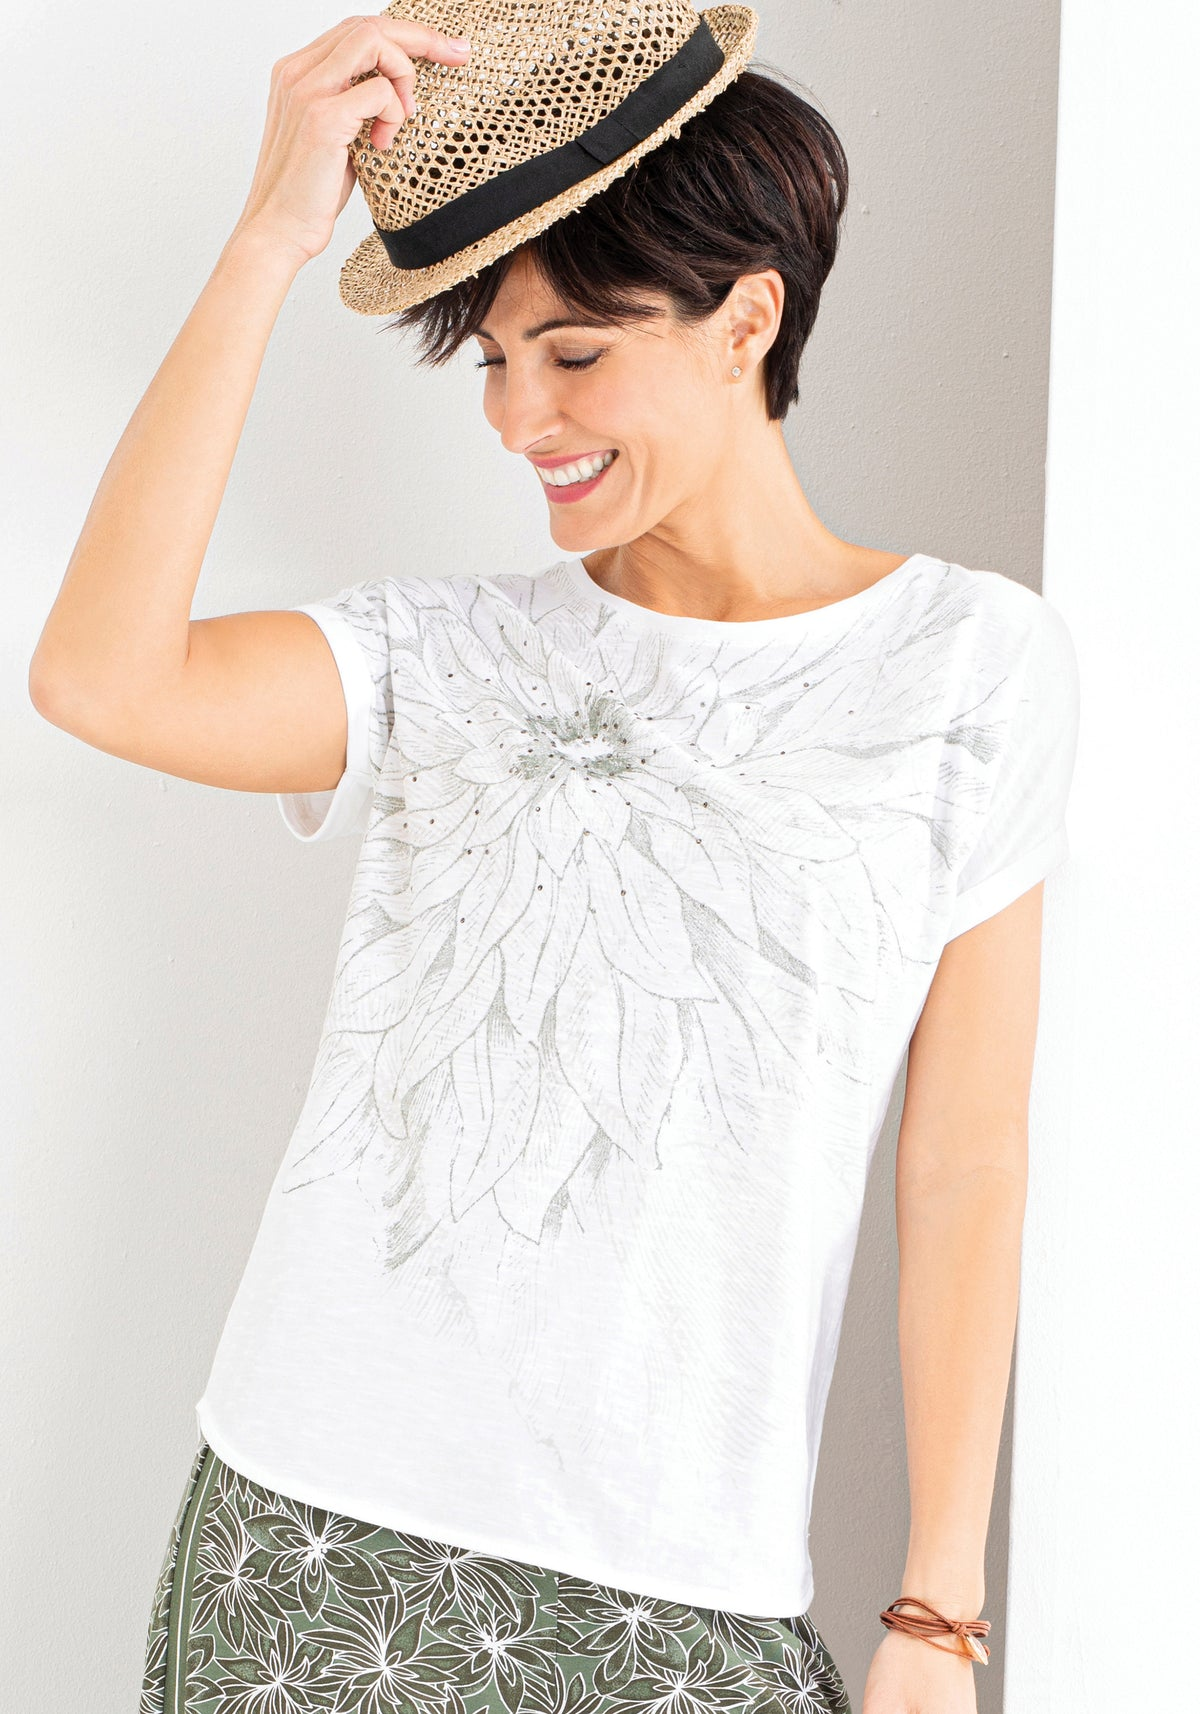 100% Cotton Short Sleeve Boat Neck T-Shirt with Artsy Floral Print & Stud Embellishment